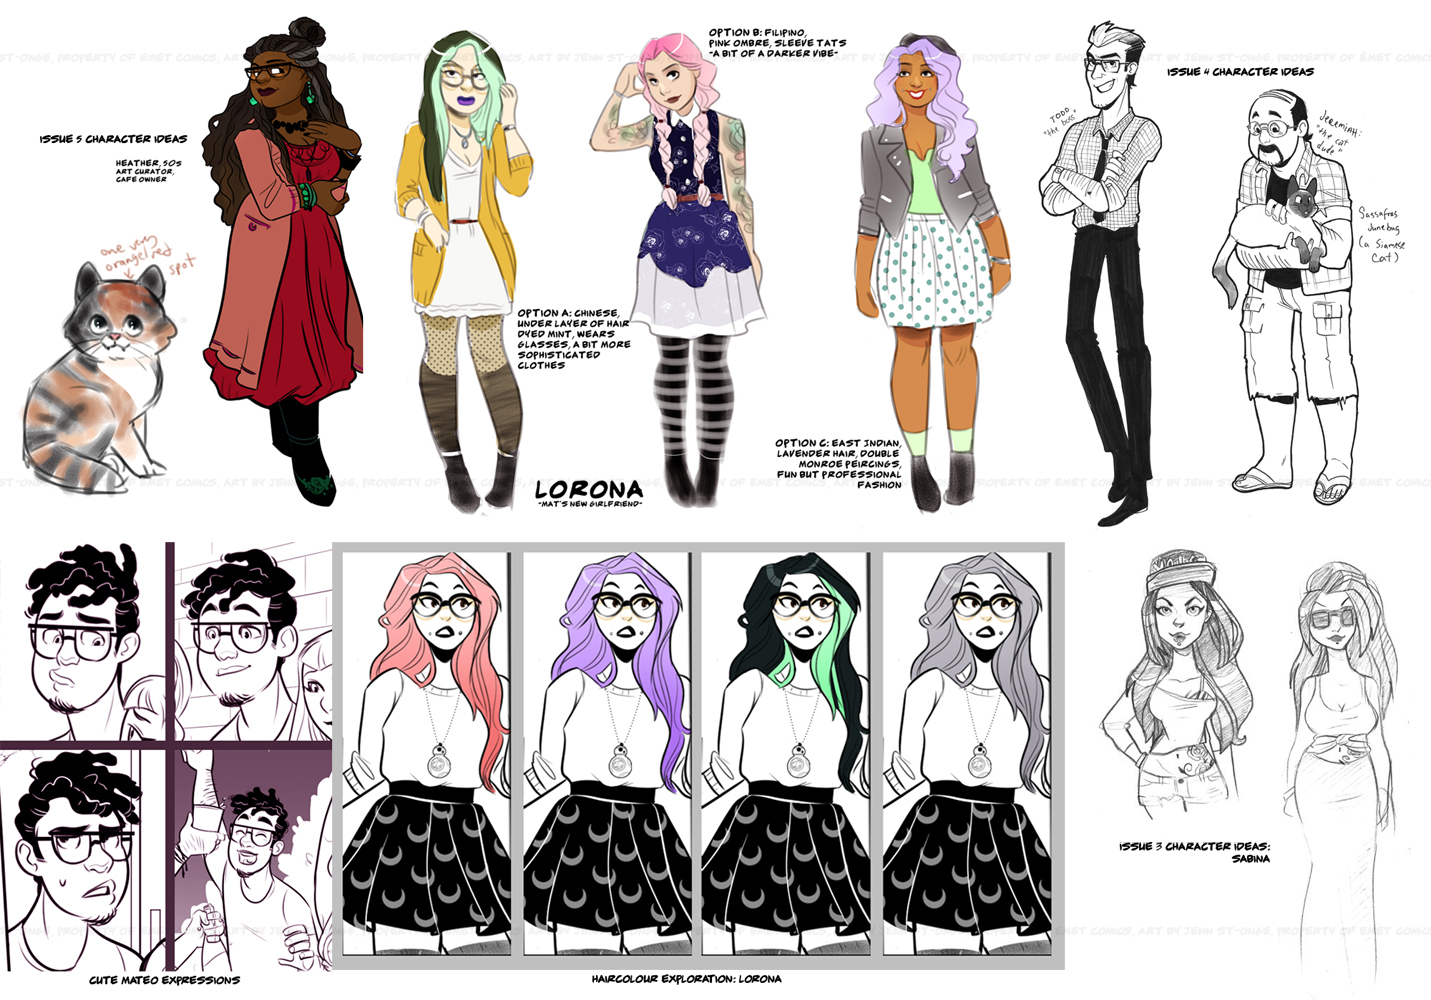 Character design work (issue #3-5)